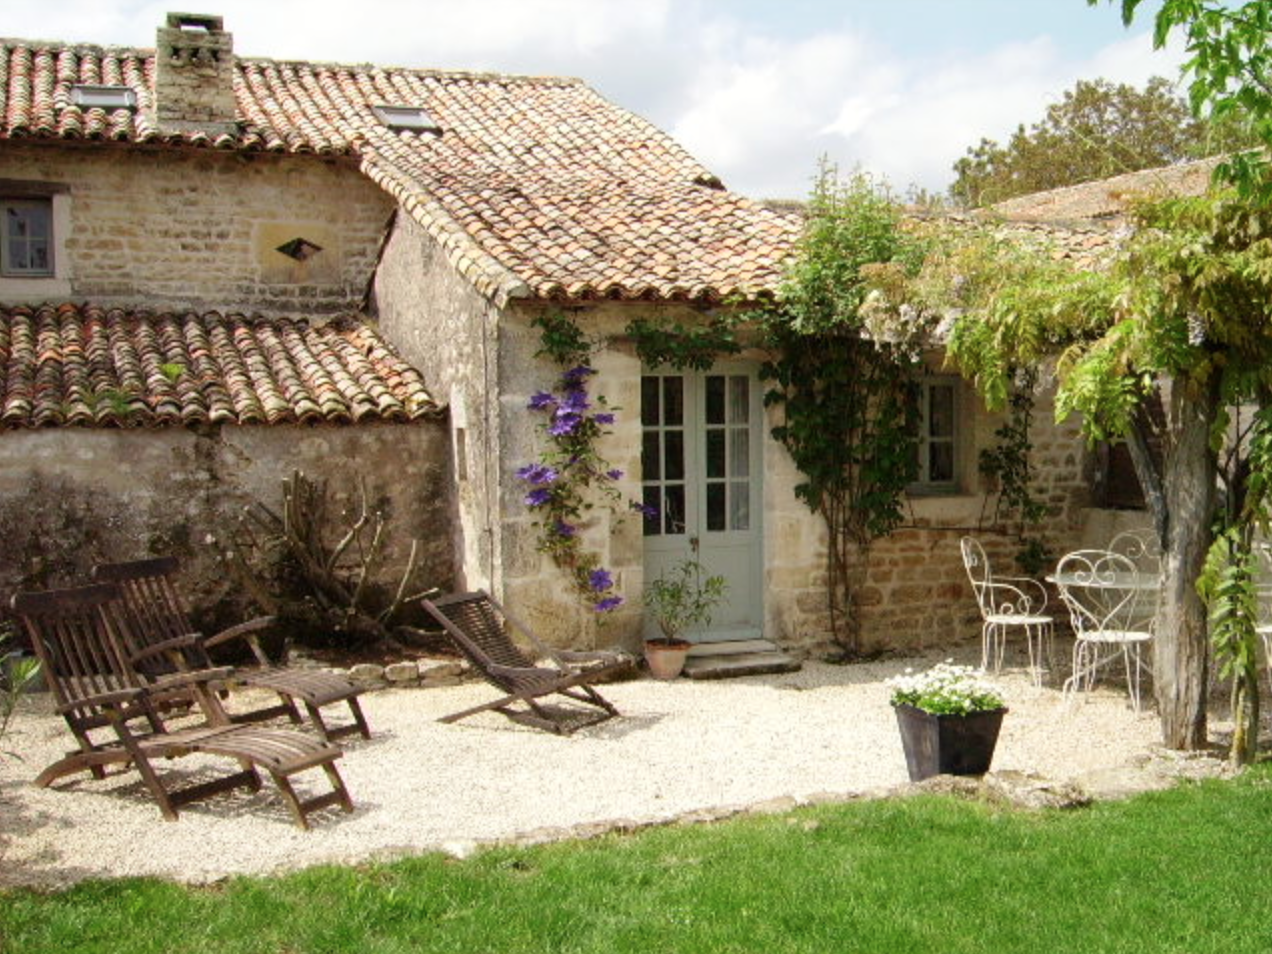 LE CLOS DES JARDINS  - Our other Rural Retreat offers three gites in the grounds of a typically French 18th Century Charentaise  farmhouse.www.lesclosdesjardins.com